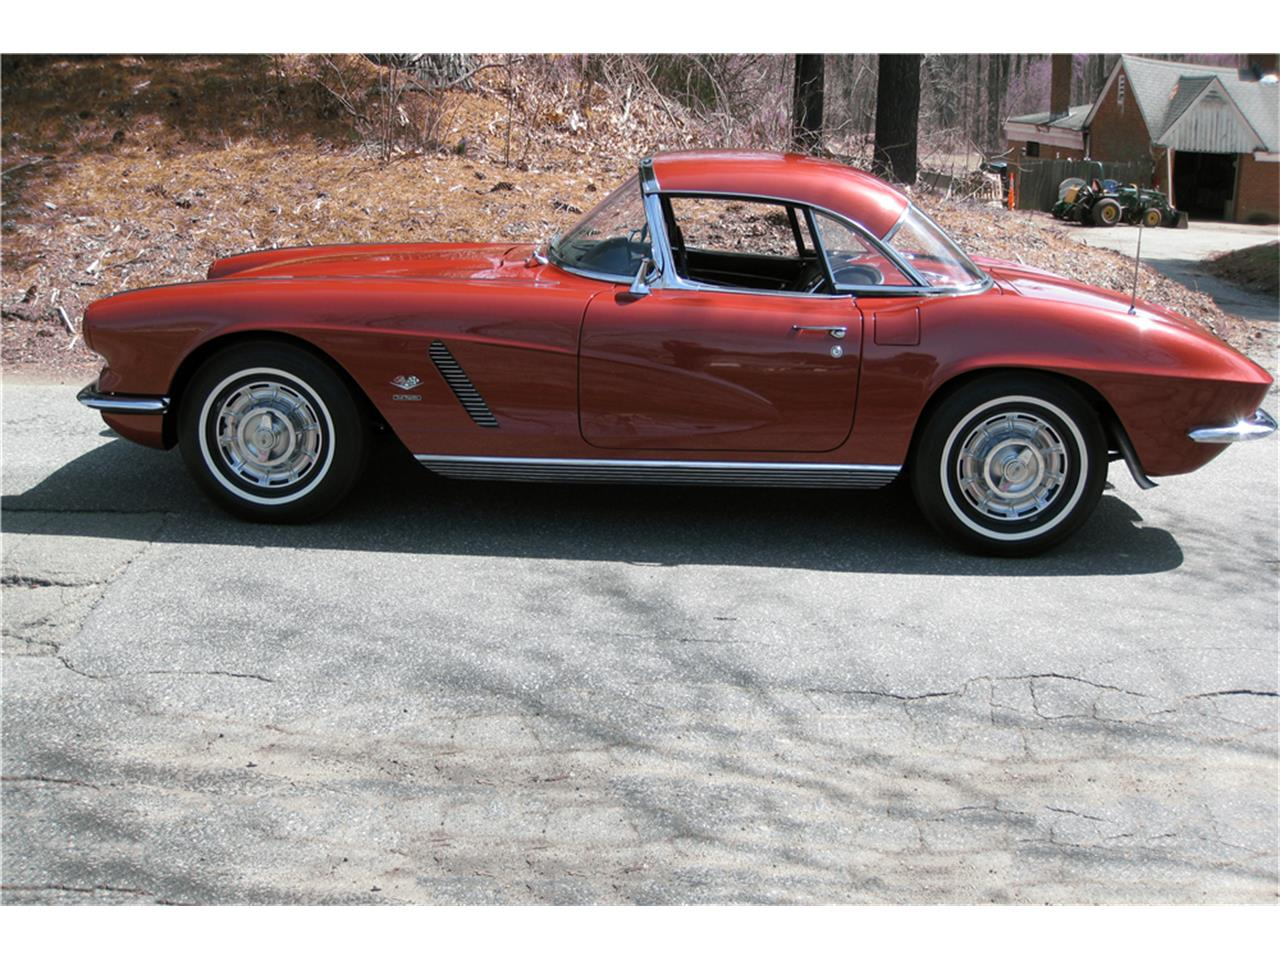 Large Picture of Classic 1962 Chevrolet Corvette located in Uncasville Connecticut Auction Vehicle Offered by Barrett-Jackson - NELK